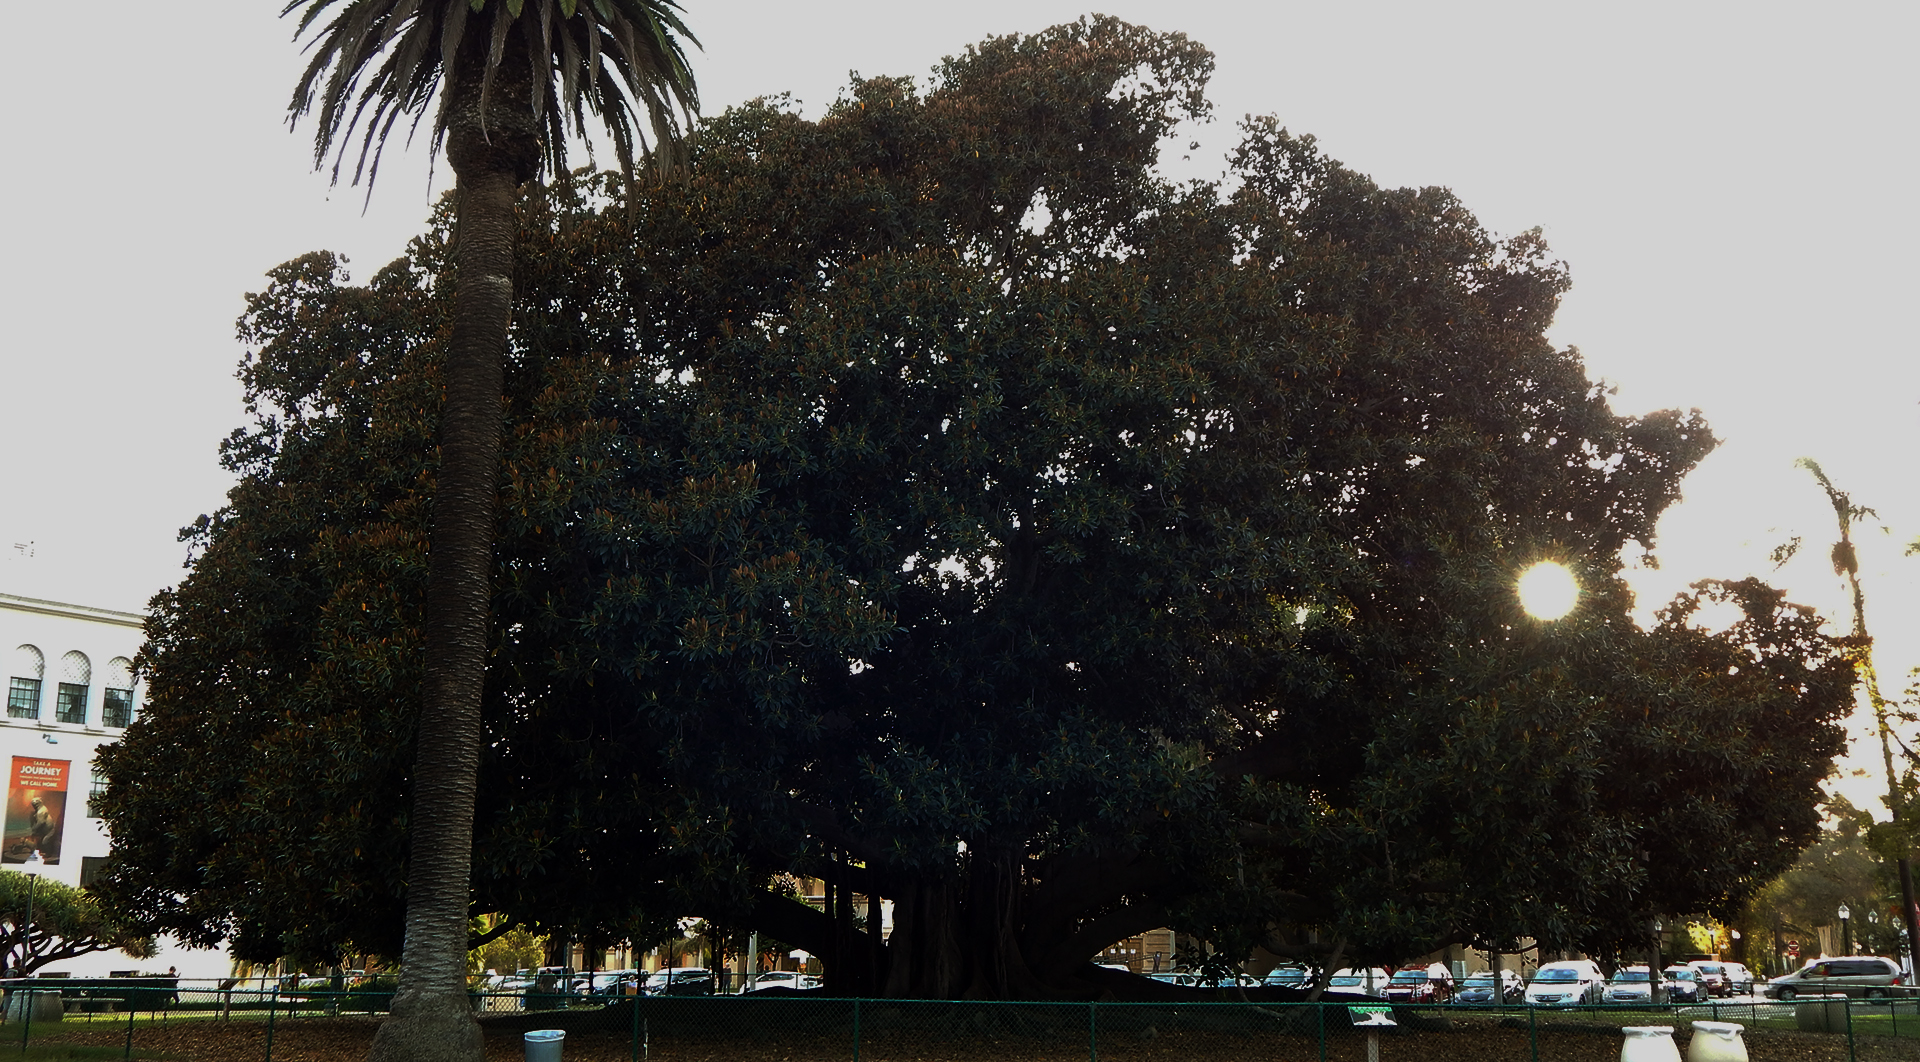 Moreton Bay Fig Tree in Balboa Park